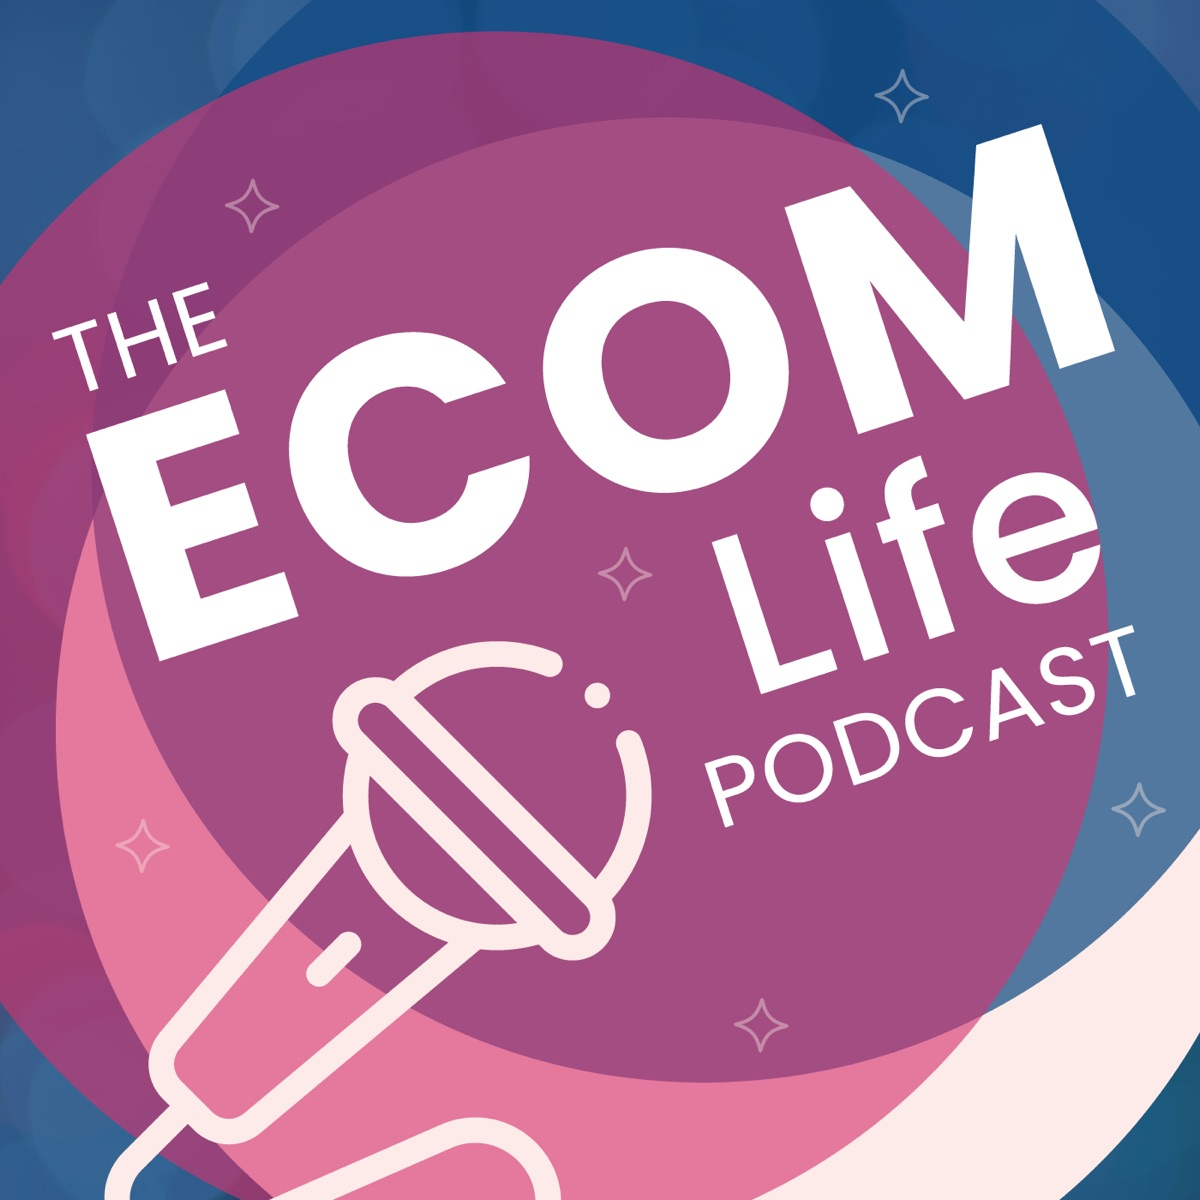 The eCom Life Podcast